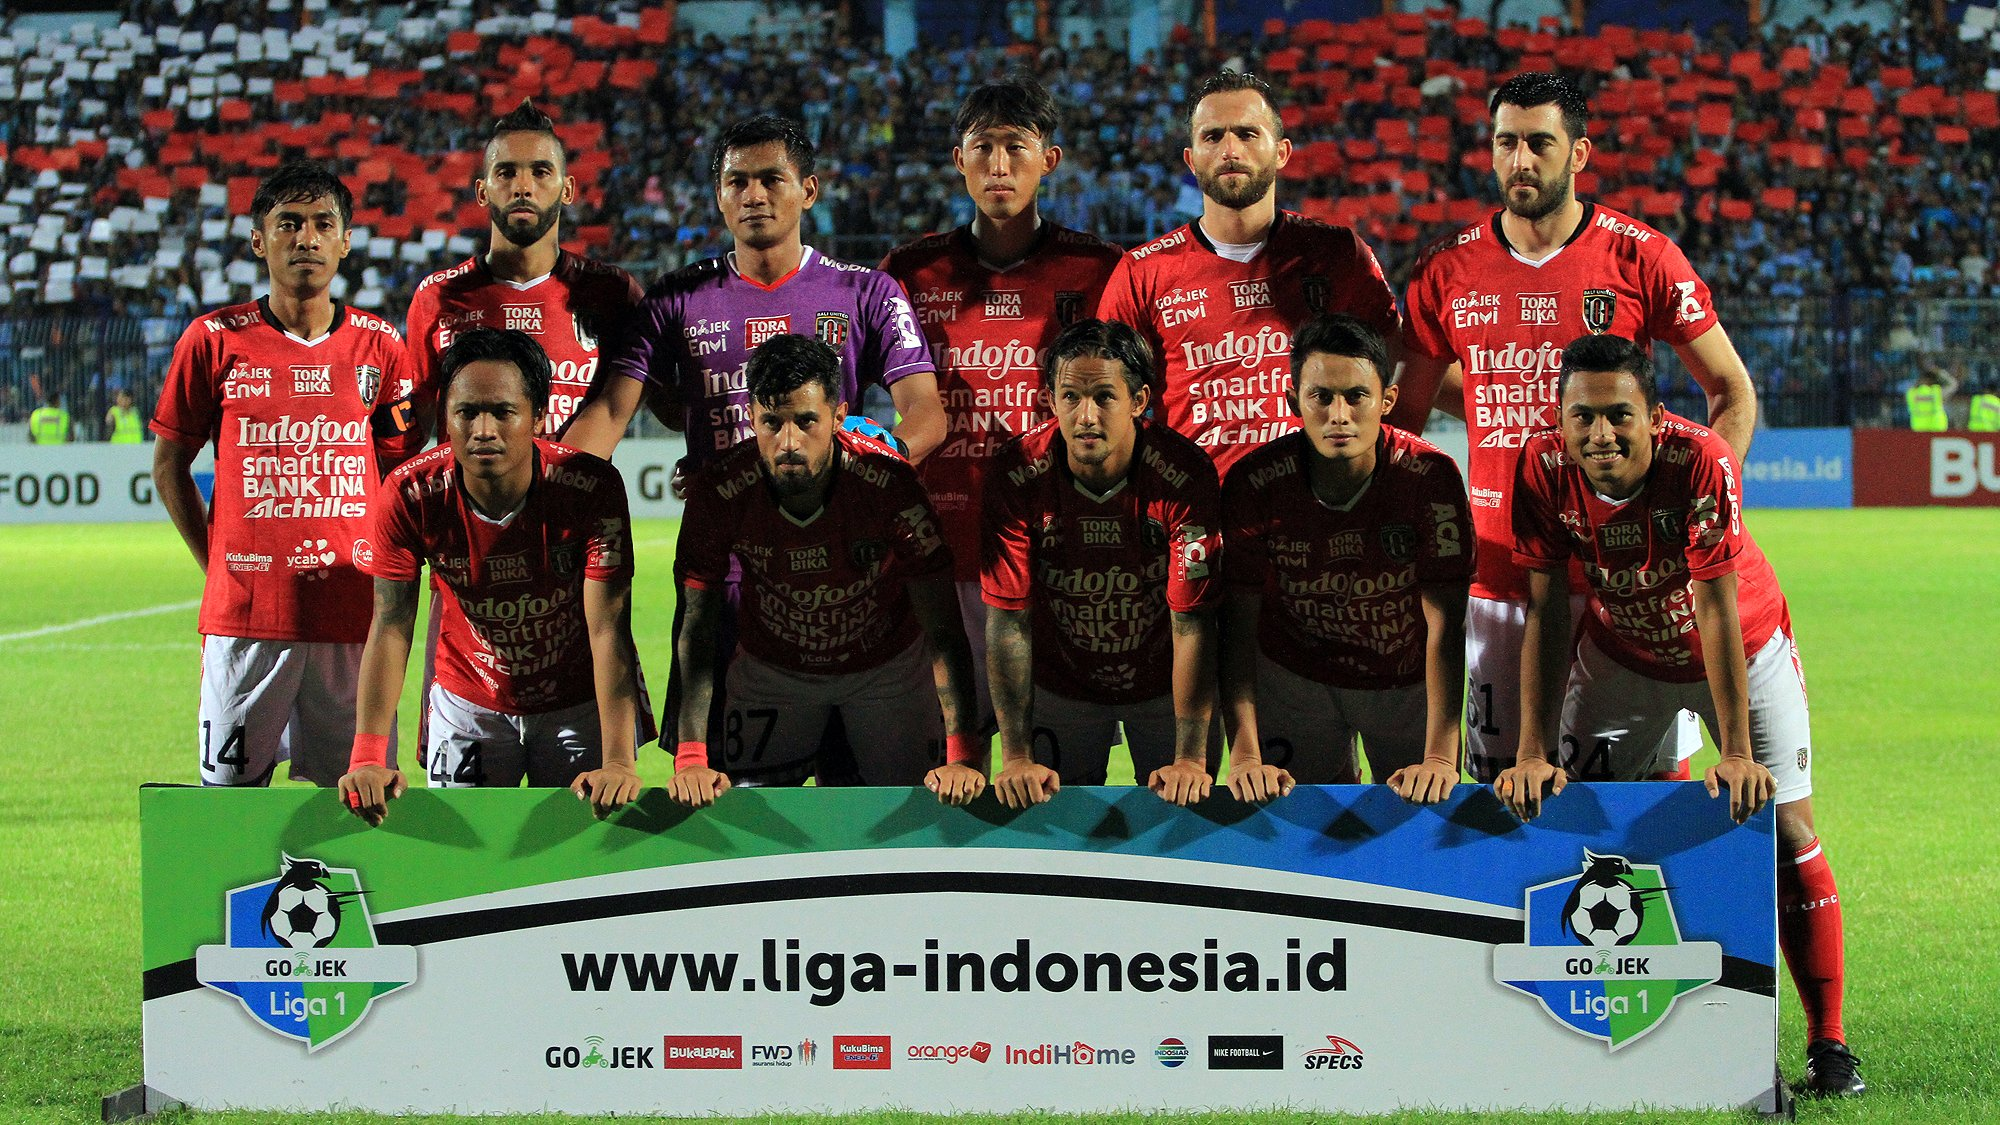 Bali United Bertekad Pertahankan Performa Impresif - https://t.co/xsBGPQk0NV https://t.co/1NHhvpOaZC